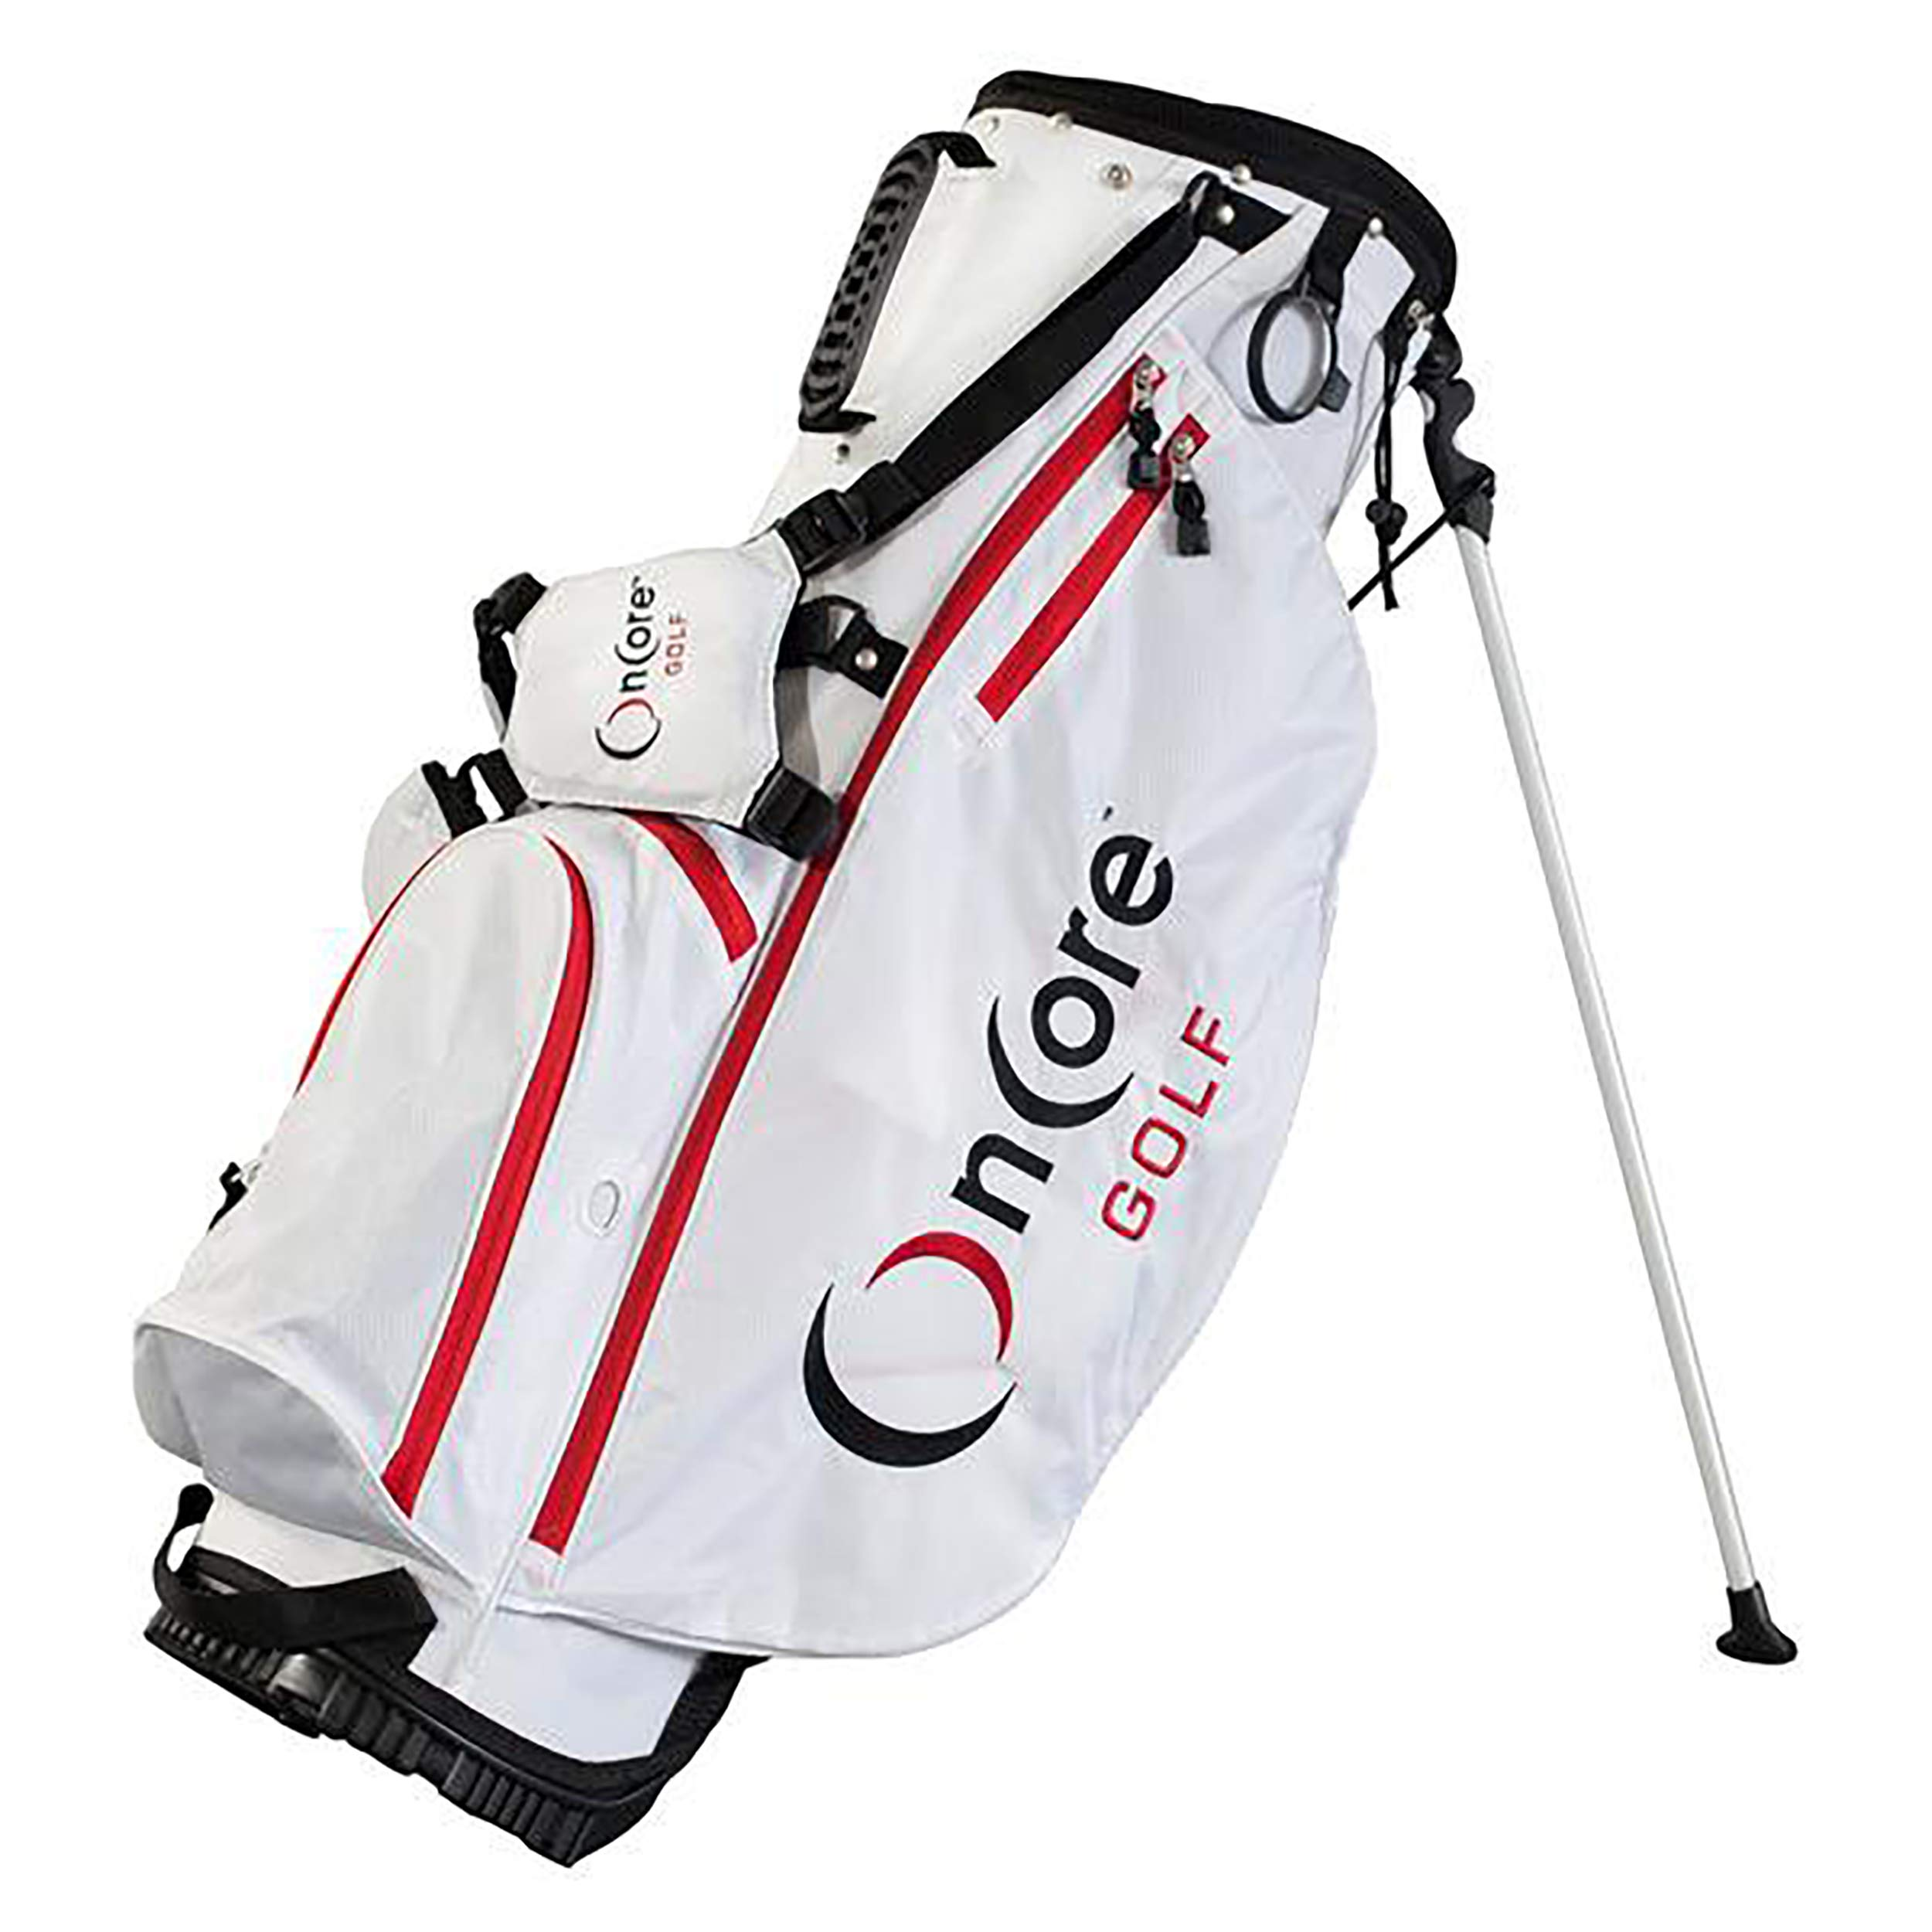 ONCORE GOLF Bags | Stand Golf Bag | Padded Carrying Strap | Full-Length Club Dividers | Lightweight & Durable Design | Umbrella Holder & Removable Rain Hood | White Golf Bag